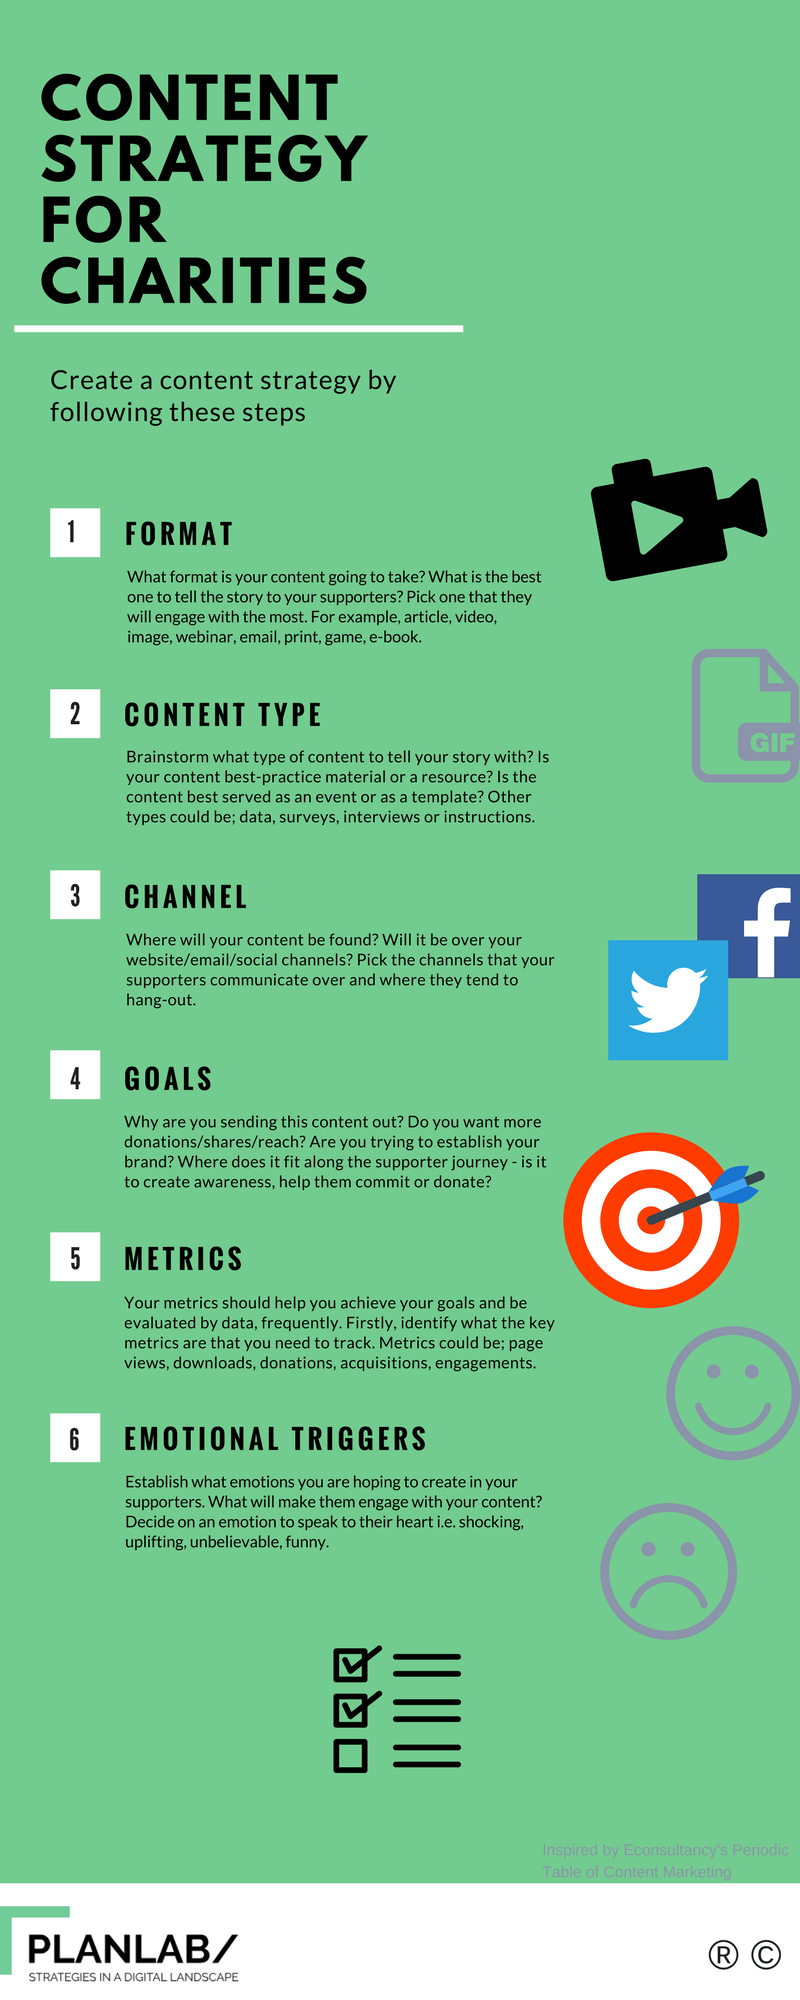 Content Strategy for Charities Infographic